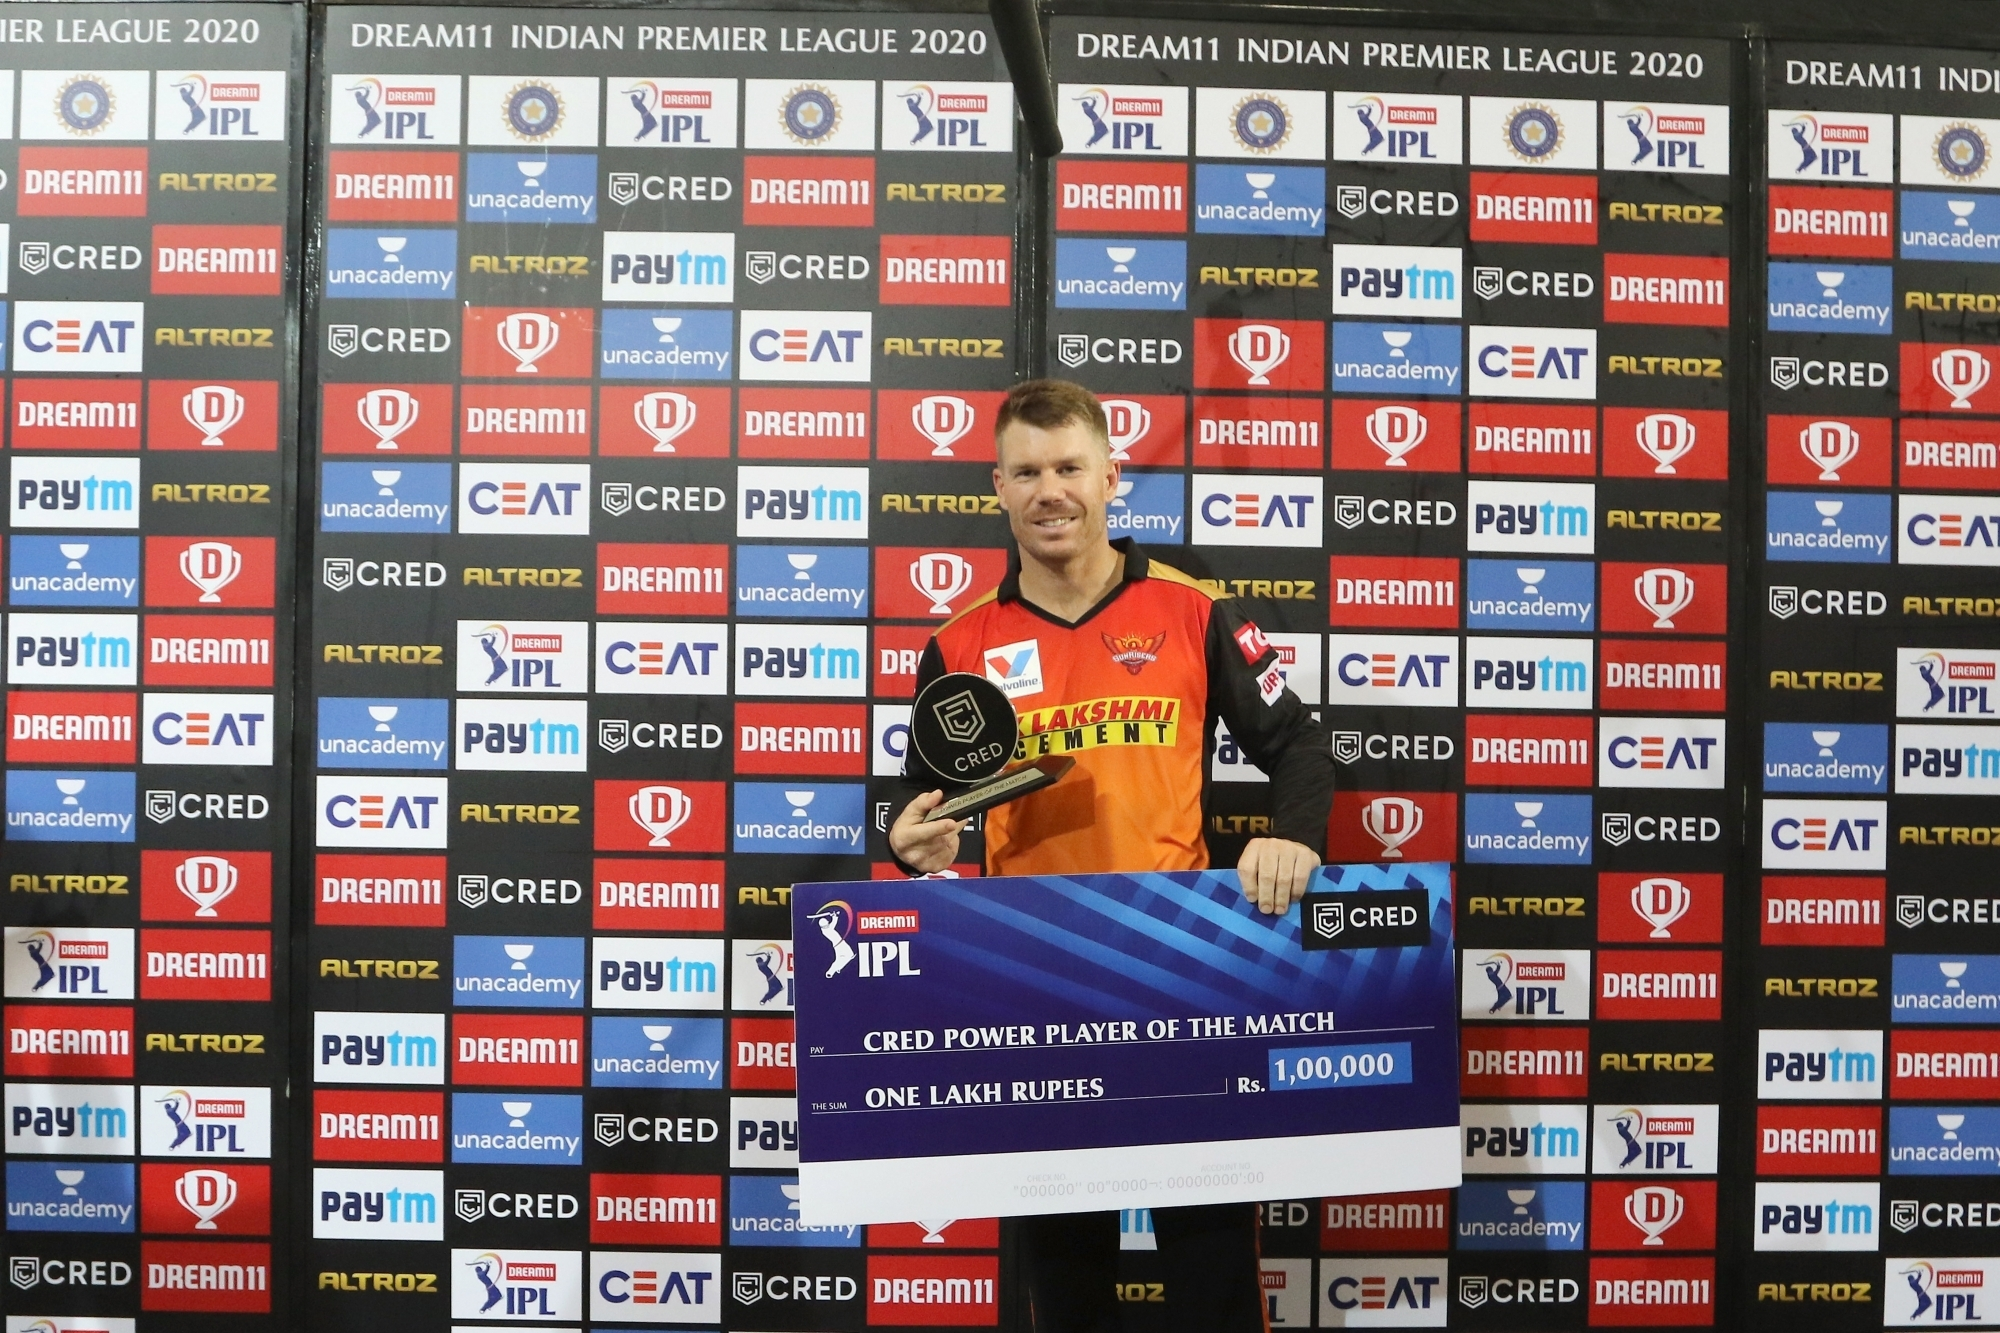 David Warner is currently playing in the IPL 2020 | IANS